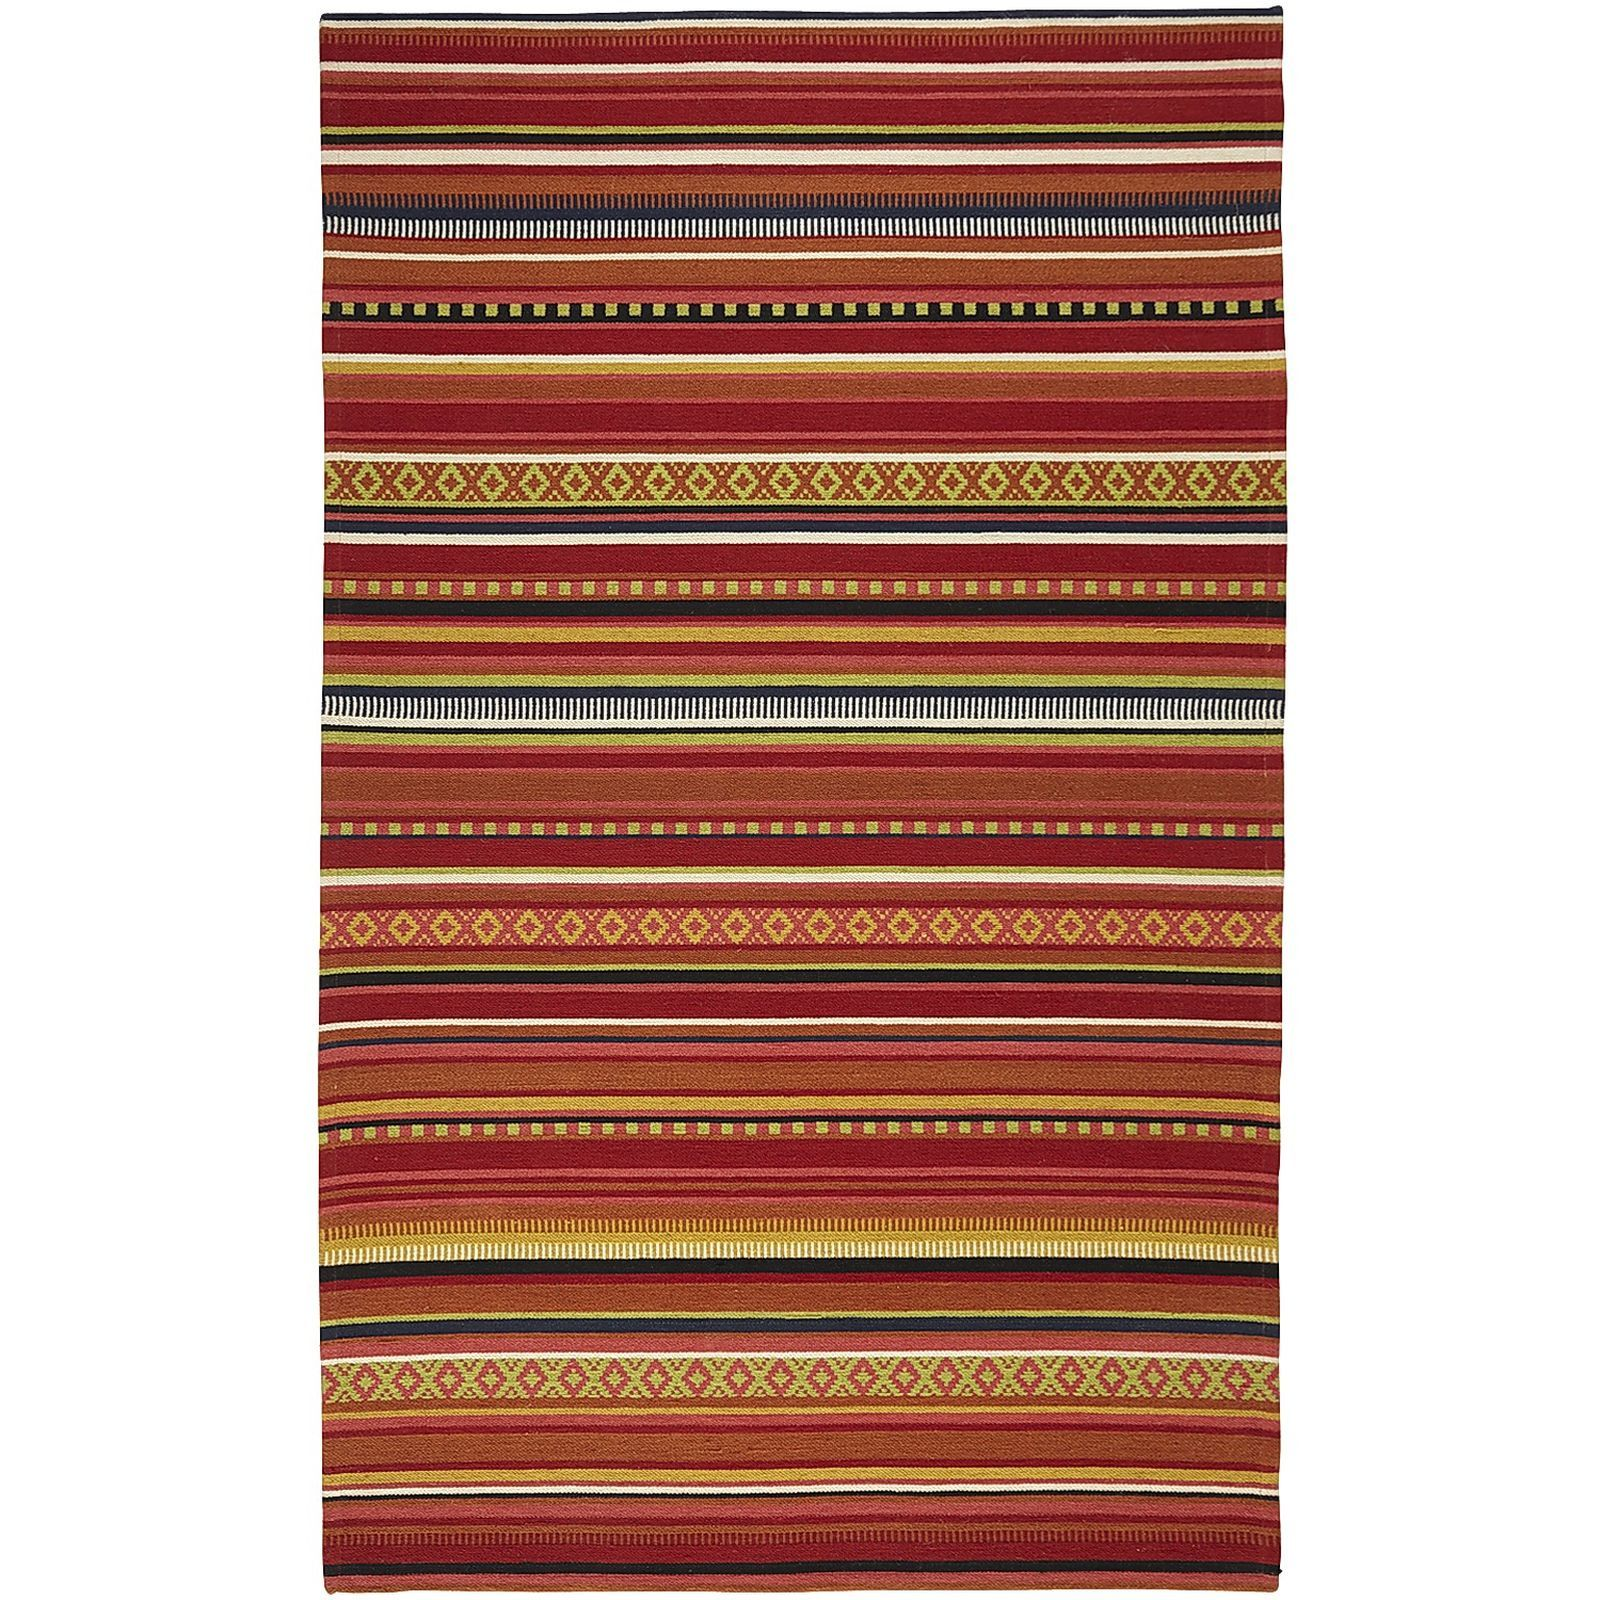 Spice up a lonely floor with a gorgeous tapestry. Classic stripse never go out of style, and the vibrant, sunset-inspired hues of our rug deliver instant warmth. Perfect for indoors or covered patios.